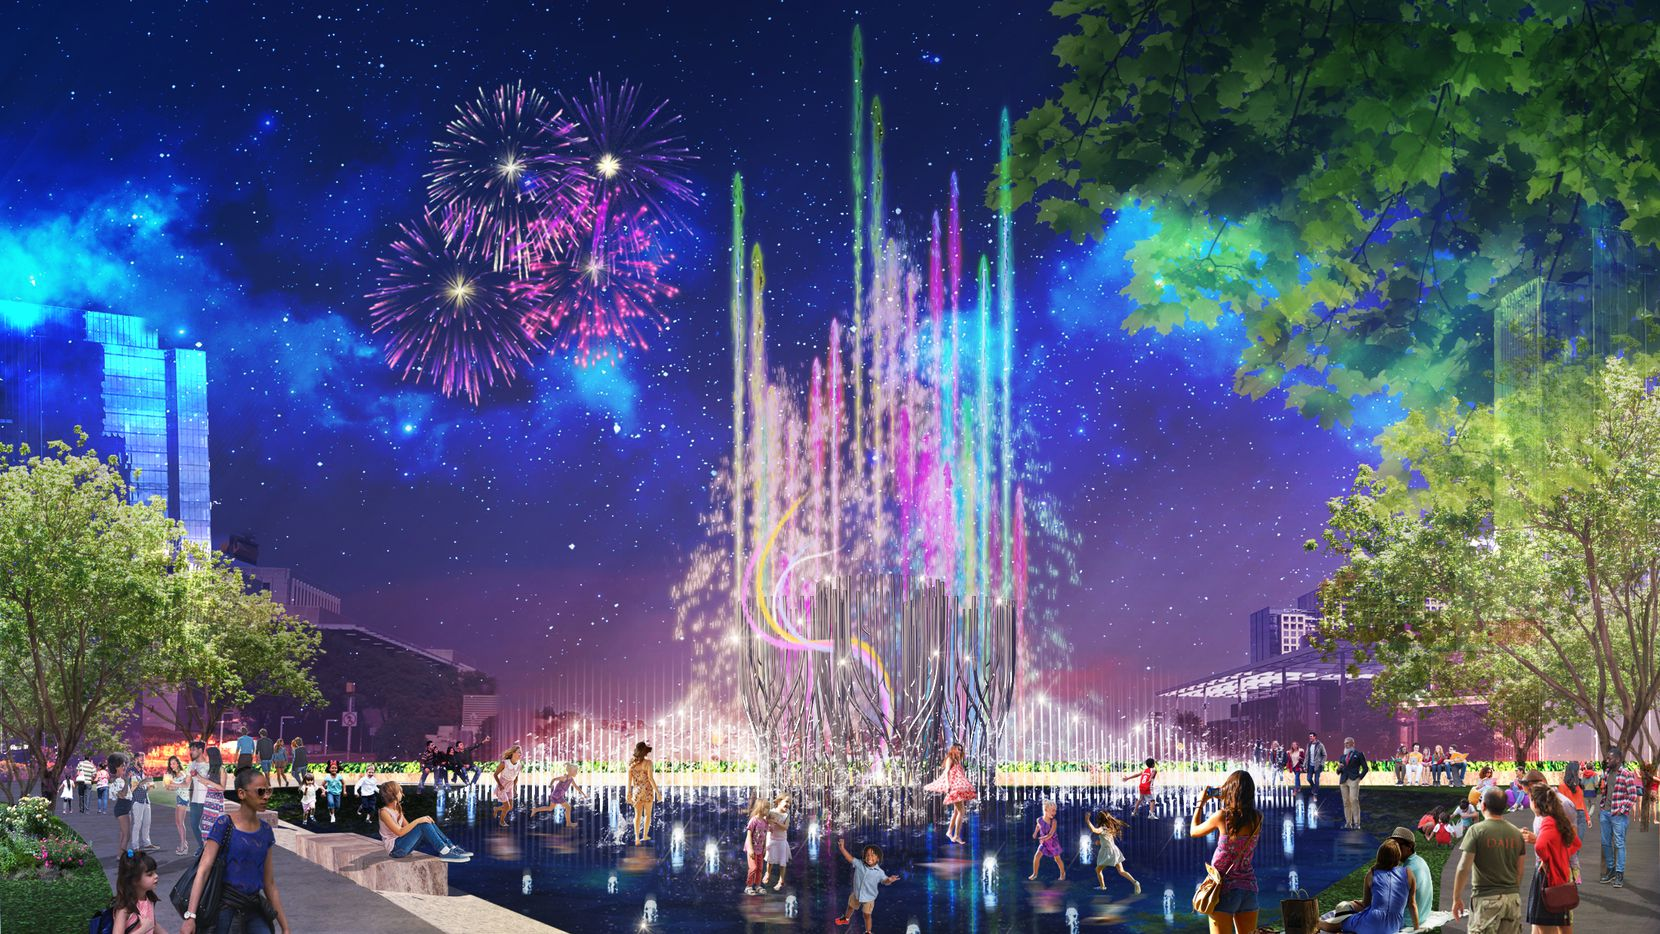 Artist rendering of the Nancy Best Fountain in Klyde Warren, which will feature the world's tallest water jets. Construction on the $10 million project will begin in the summer with completion expected in Dec. 2021.